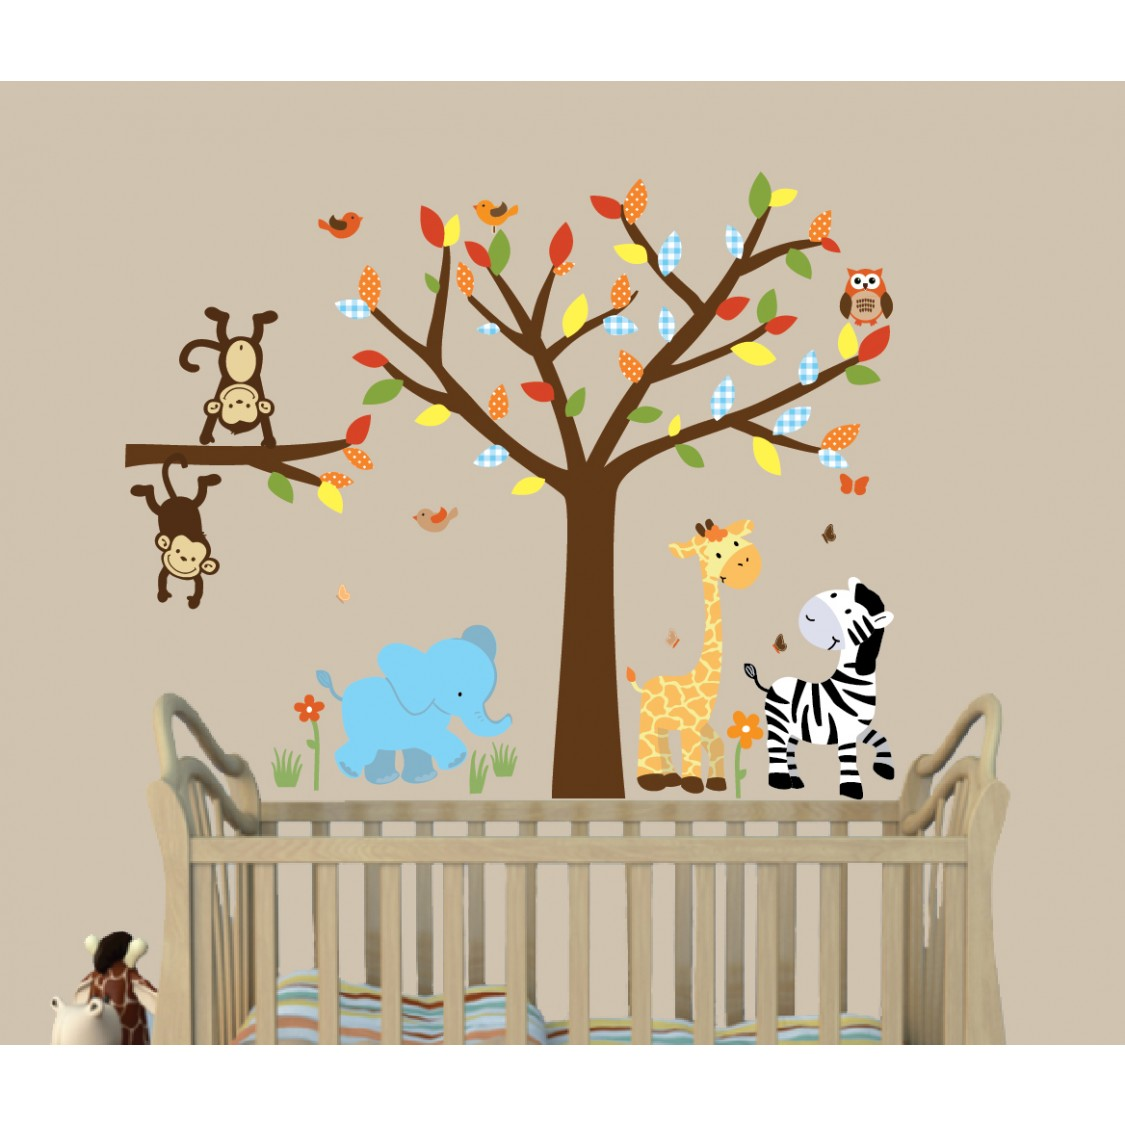 safari jungle wall murals with tree decor for nursery. Black Bedroom Furniture Sets. Home Design Ideas